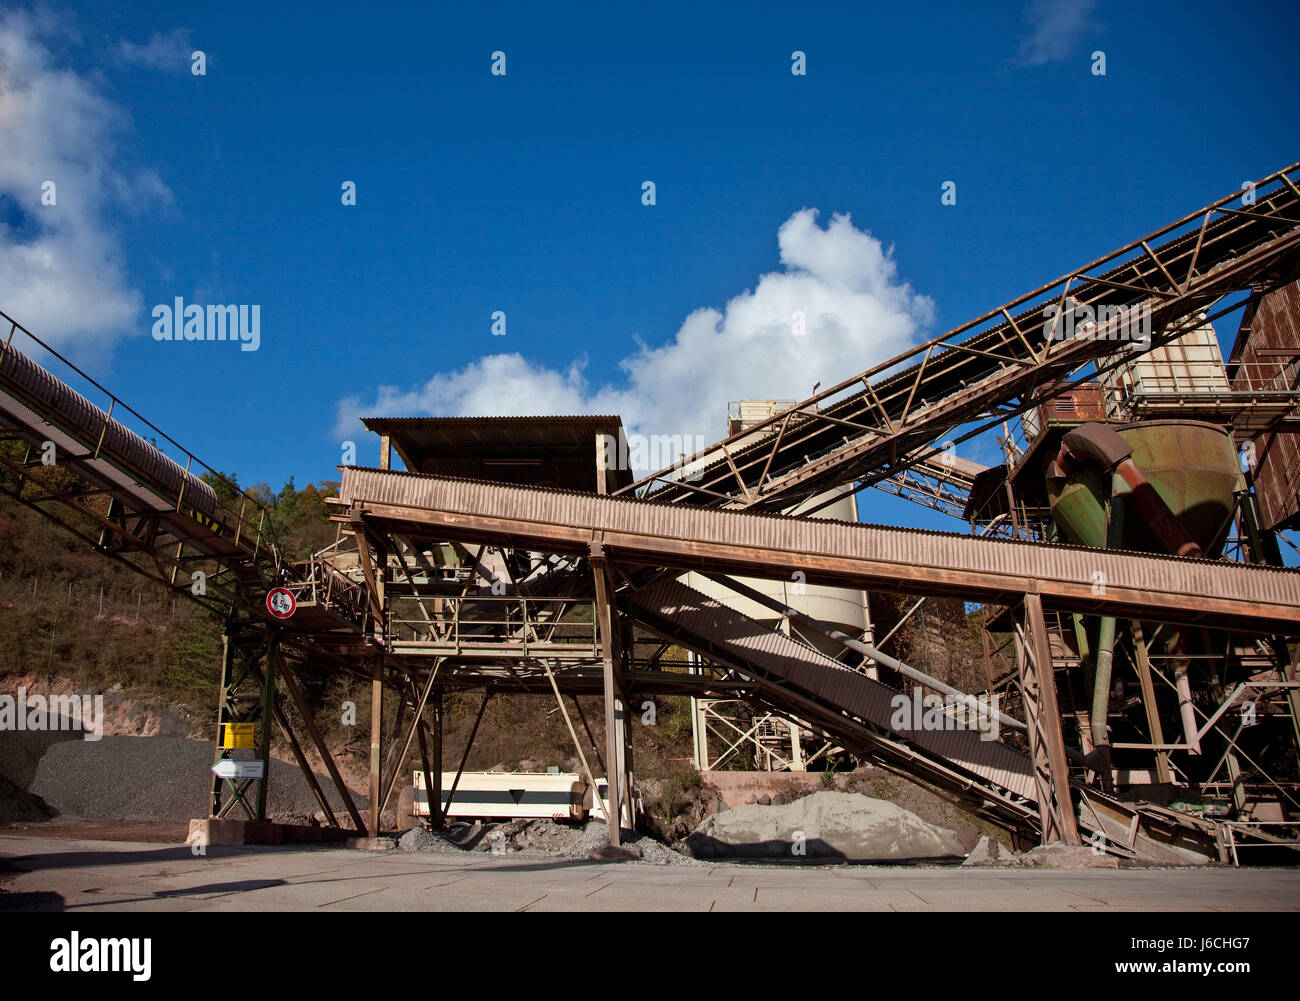 industrial buildings in a quarry - Stock Image